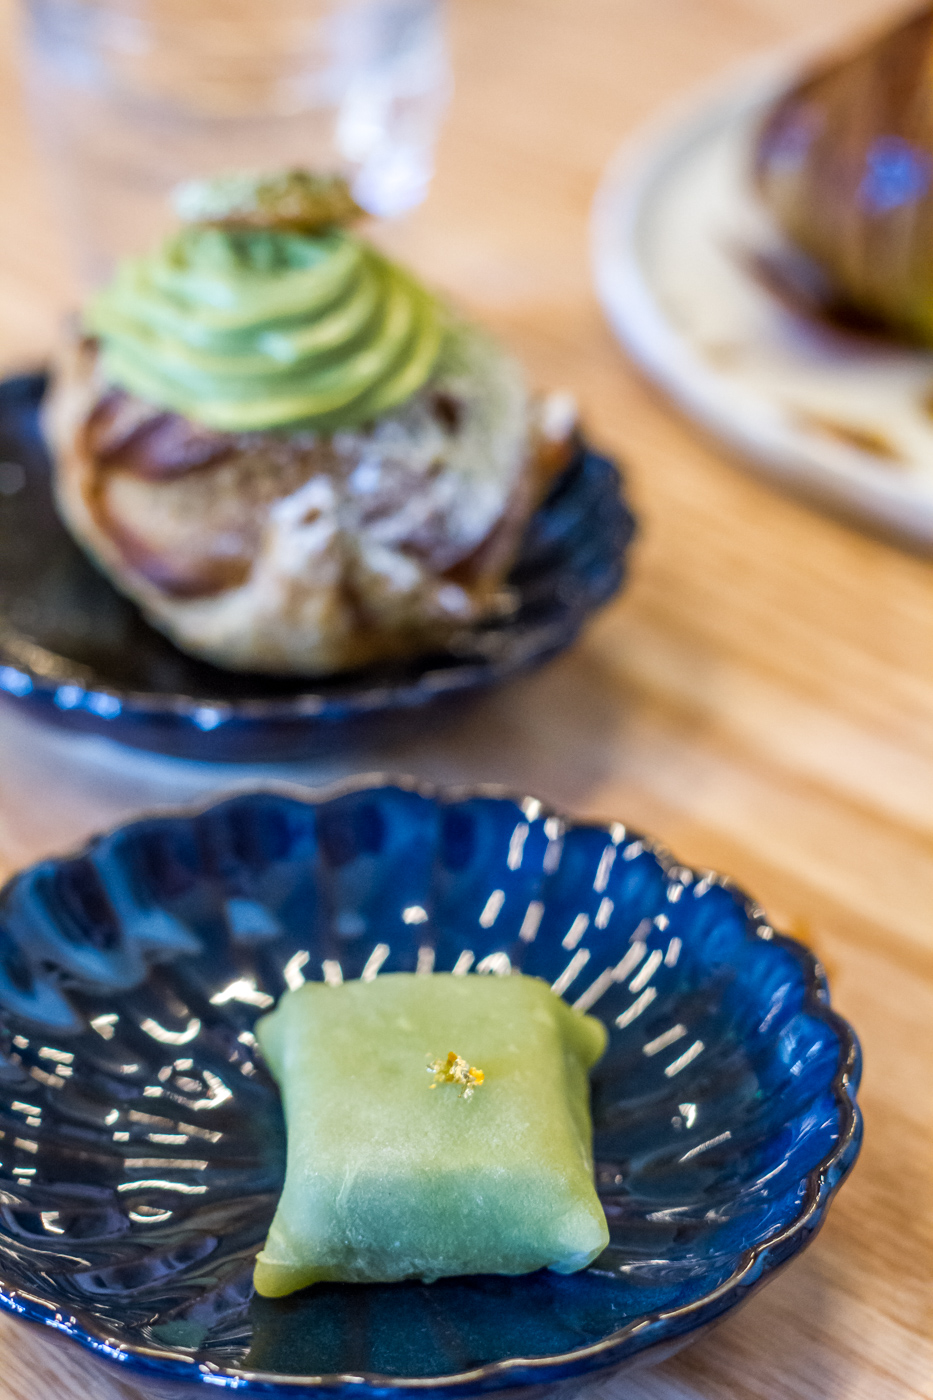 Matcha white chocolate wagashi and matcha cream puff at Stonemill Matcha Cafe in San Francisco